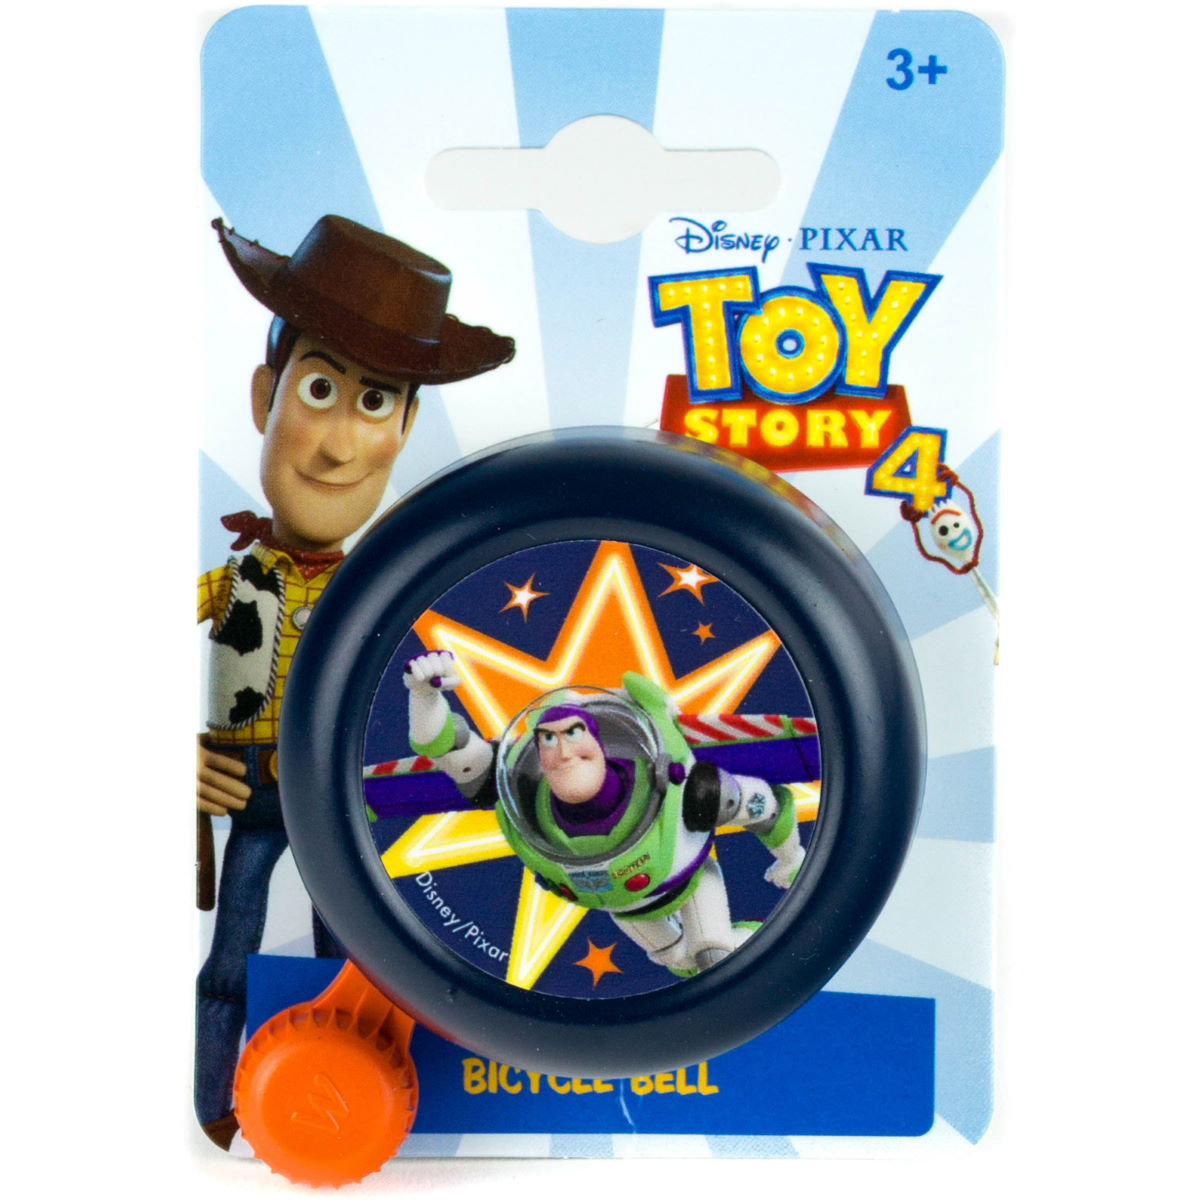 Widek Toy Story Buzz Disney Bike Bell - Timbres